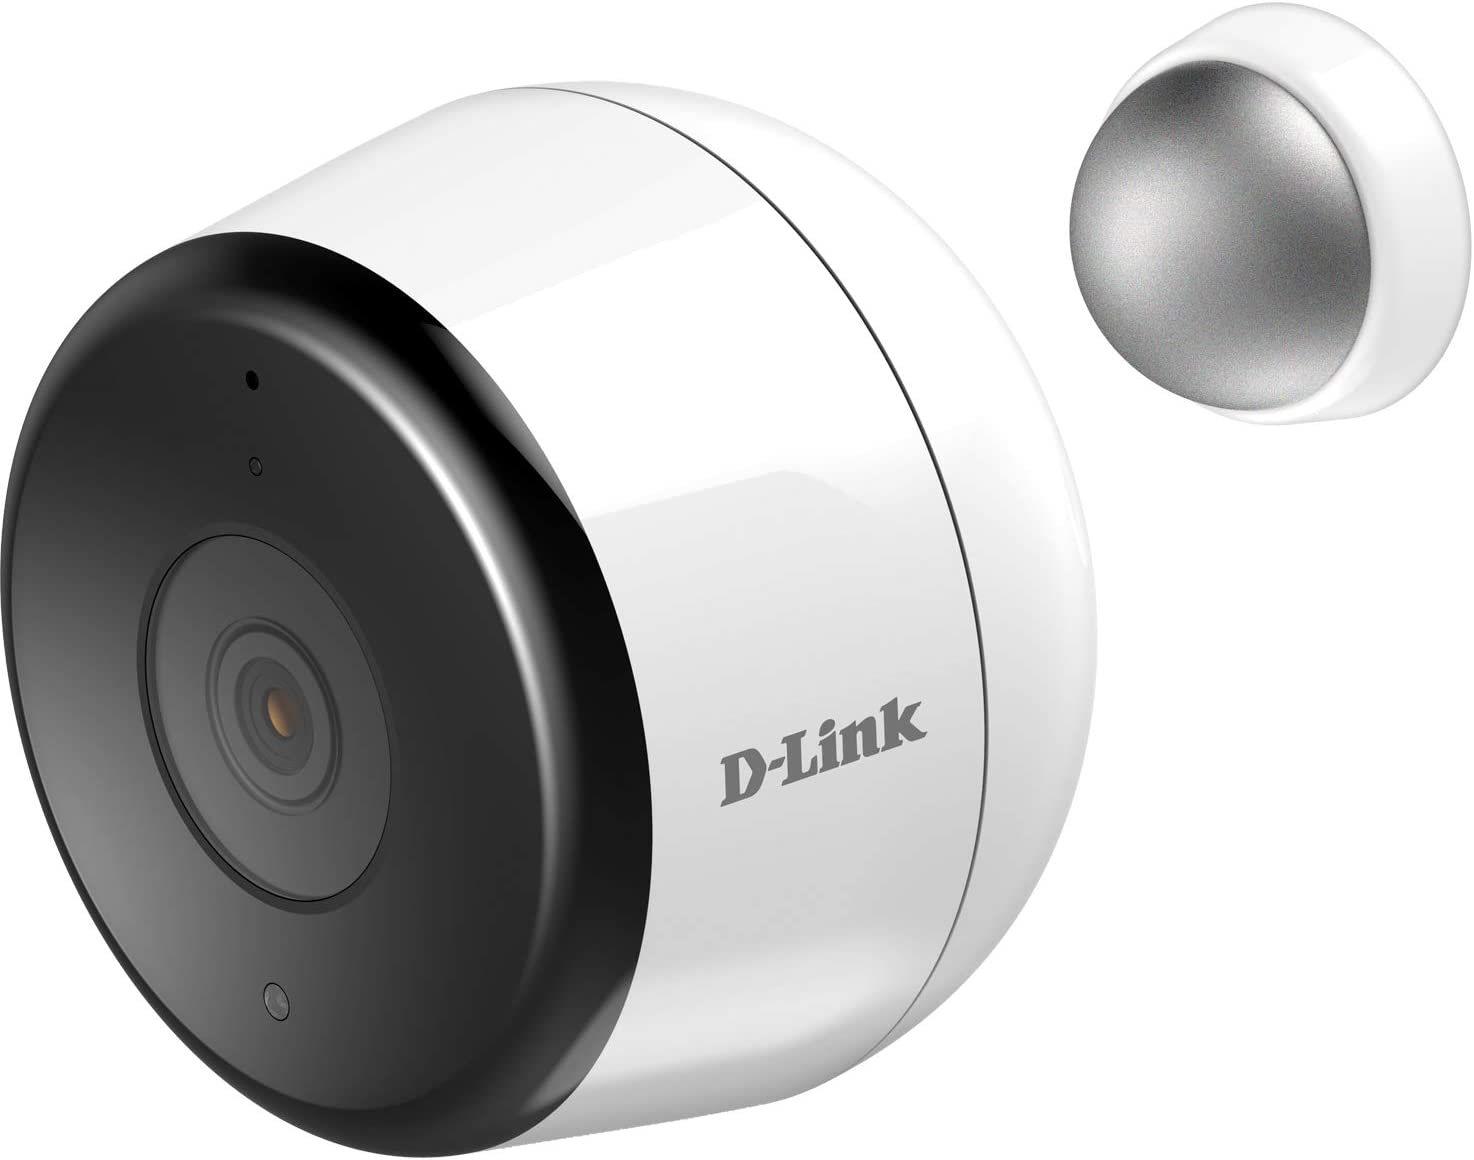 D-Link Outdoor Security Camera Wireless Wi-Fi Home Surveillance in Full HD, Phone App Notifications, Local & Cloud Recording Available, Works with Alexa (DCS-8600LH-US)